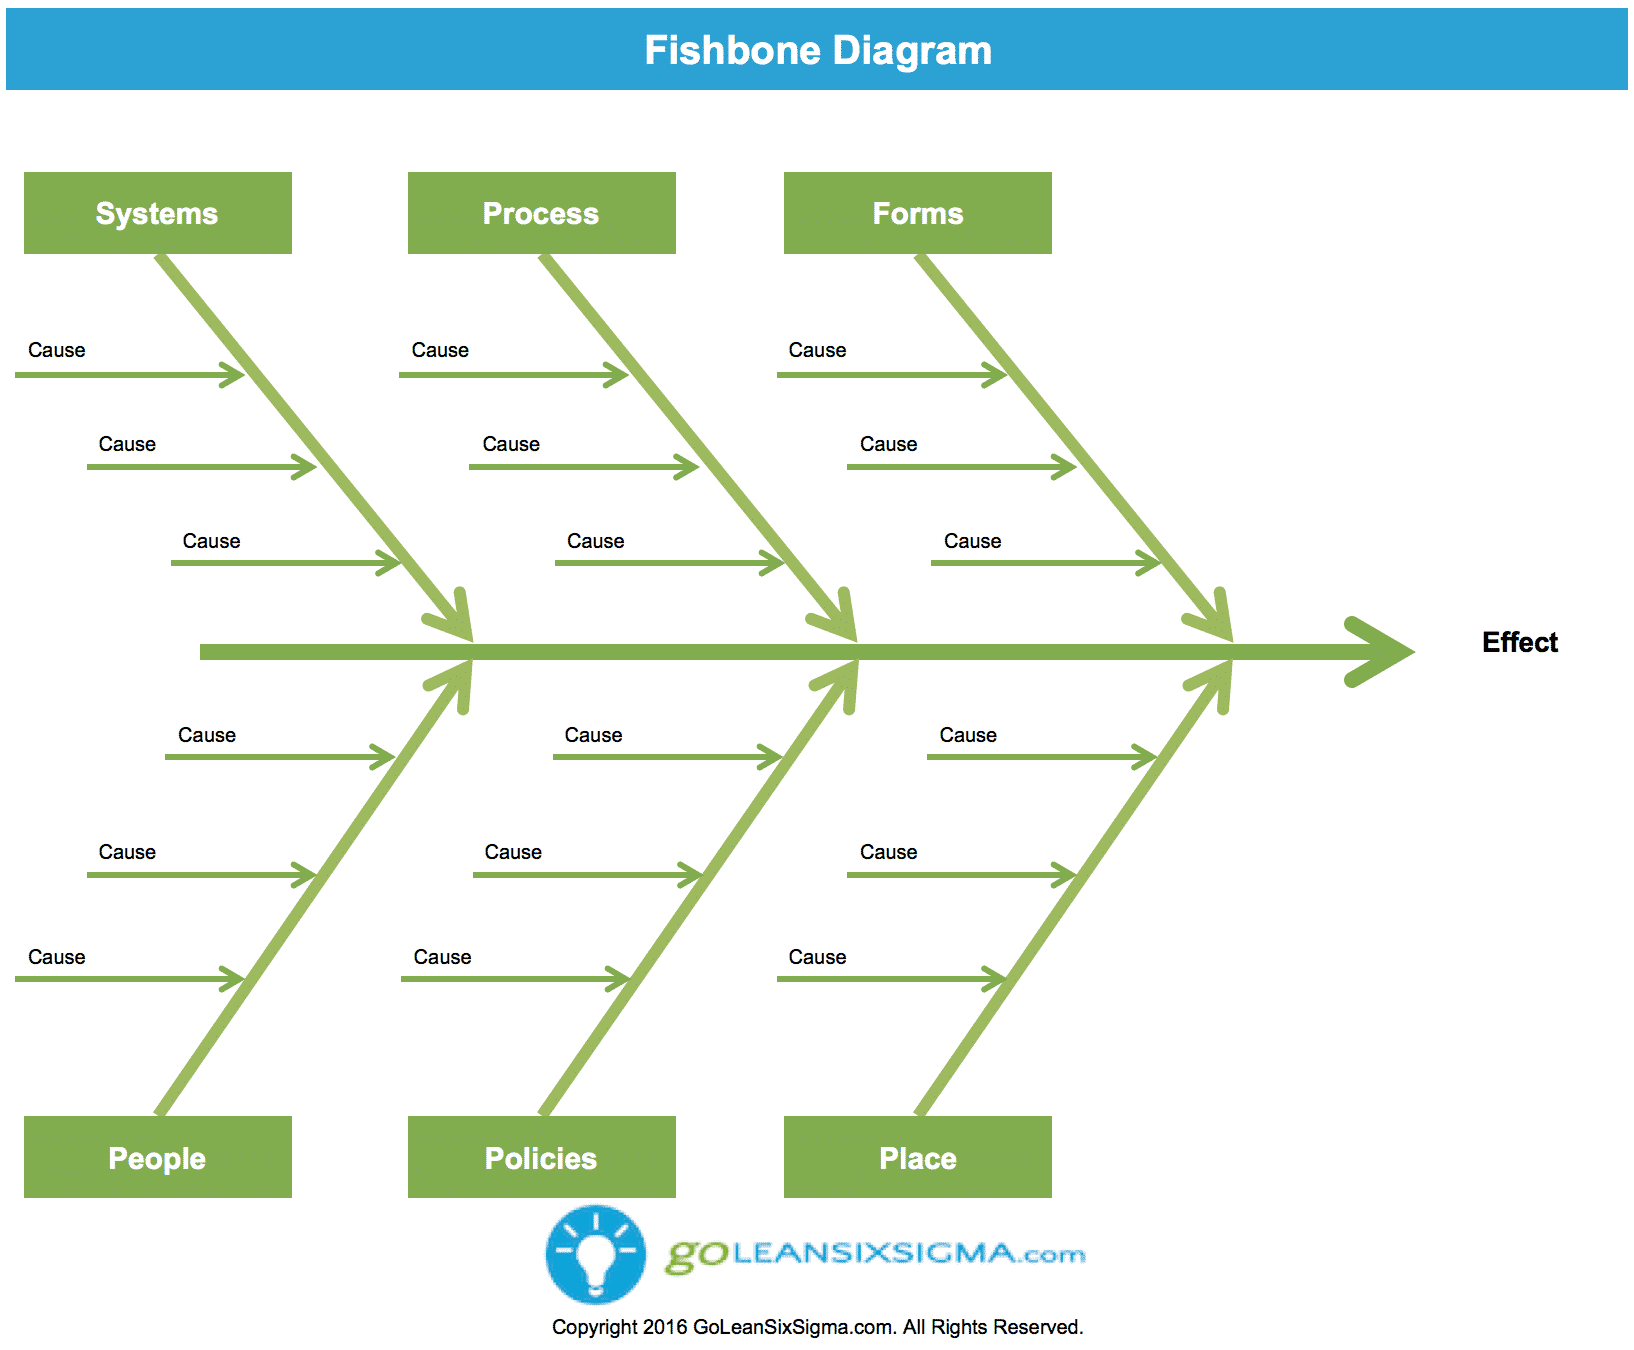 fishbone diagram or cause effect diagram template example - Fishbone Diagram Template For Word